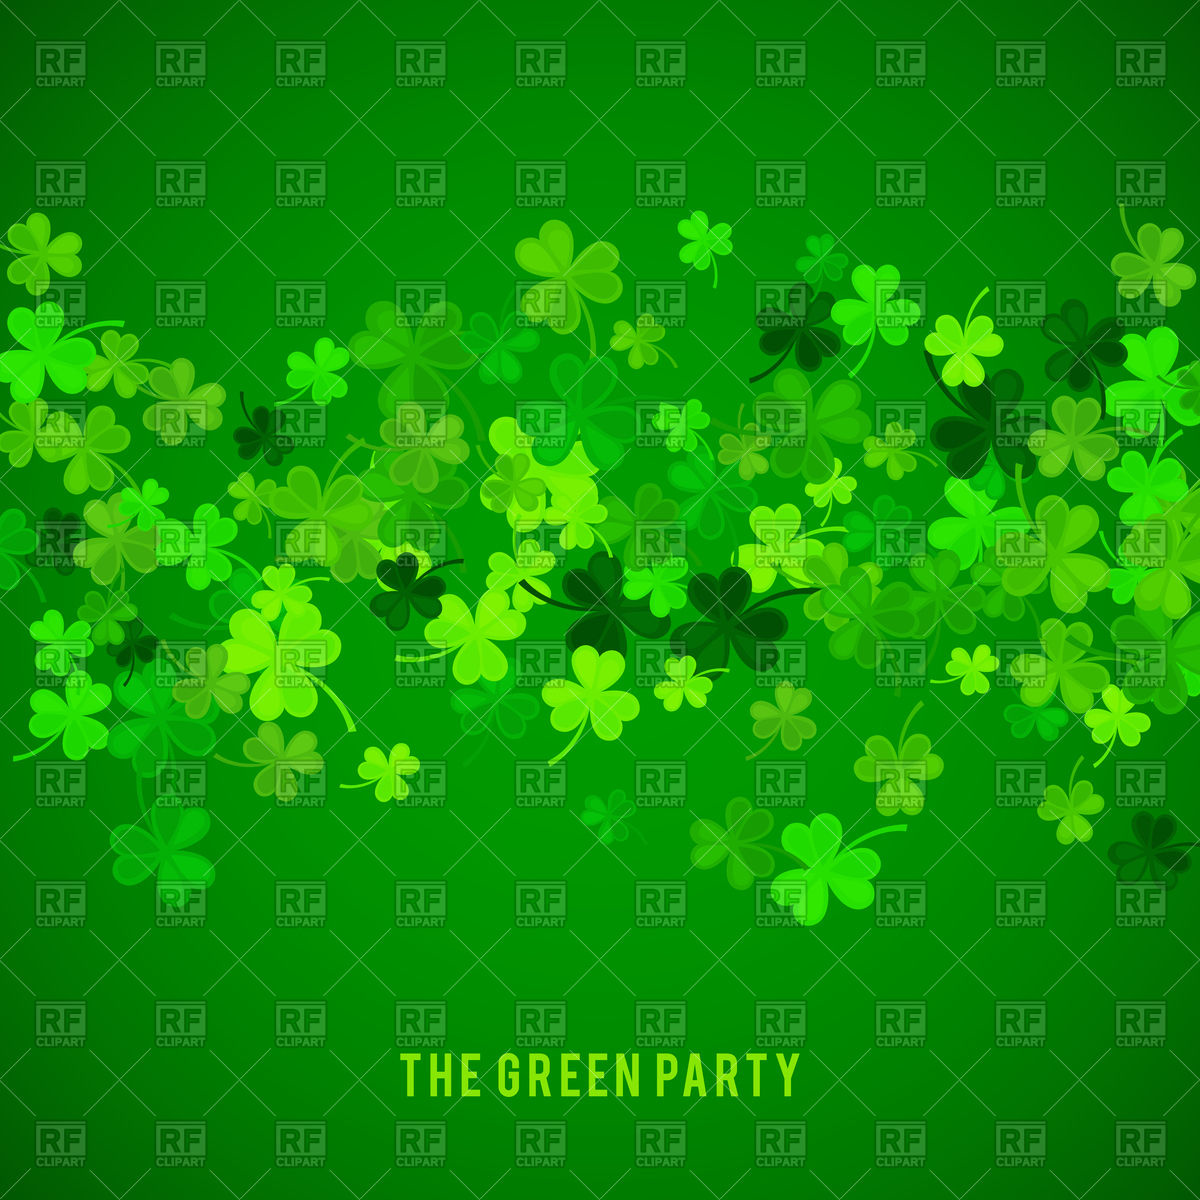 St Patricks Day background with clovers Vector Image 1200x1200